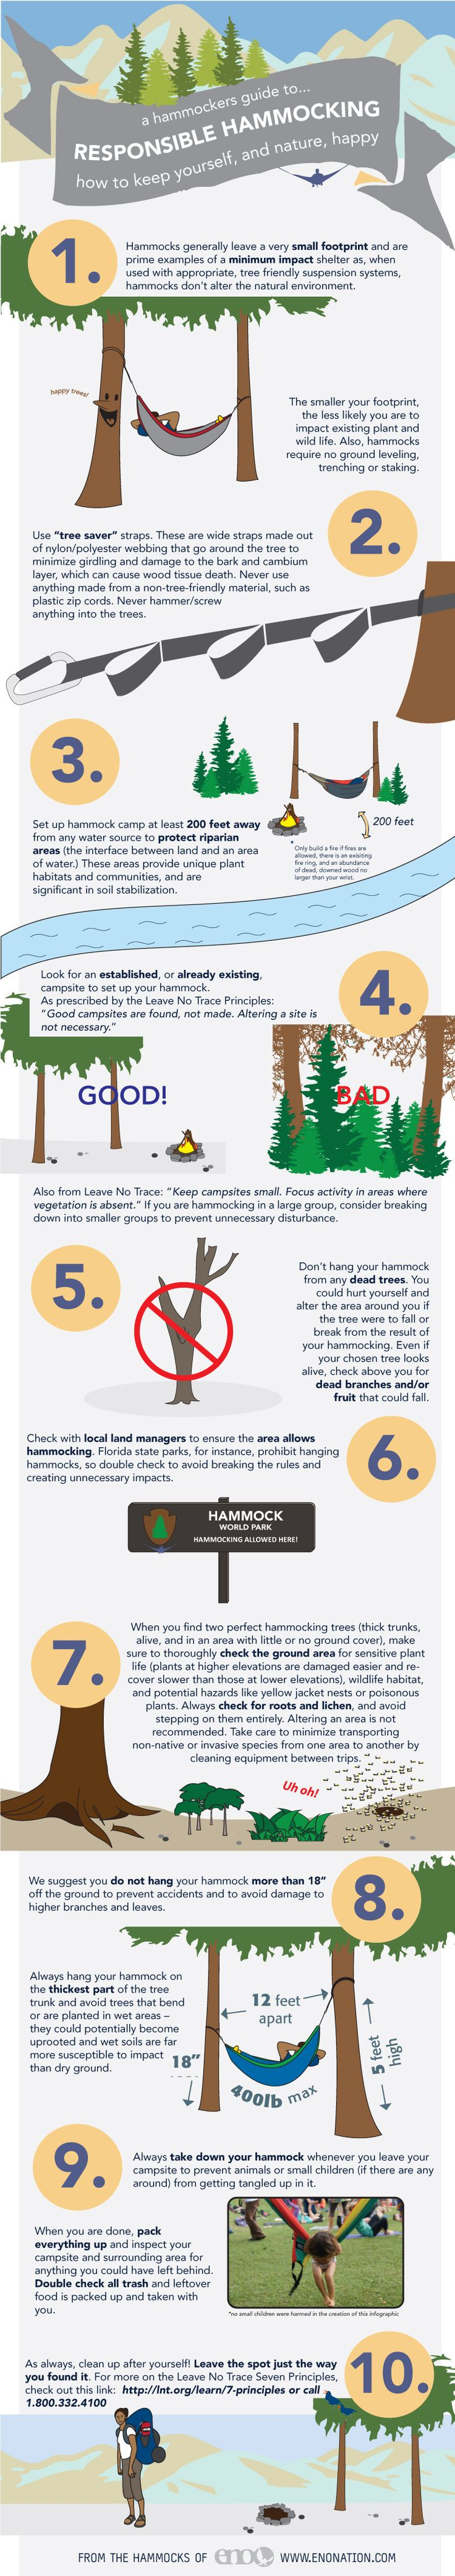 A Hammockers Guide to: Responsible Hammocking. How to keep yourself and Mother Nature happy. #relaxwitheno #happyhammocking